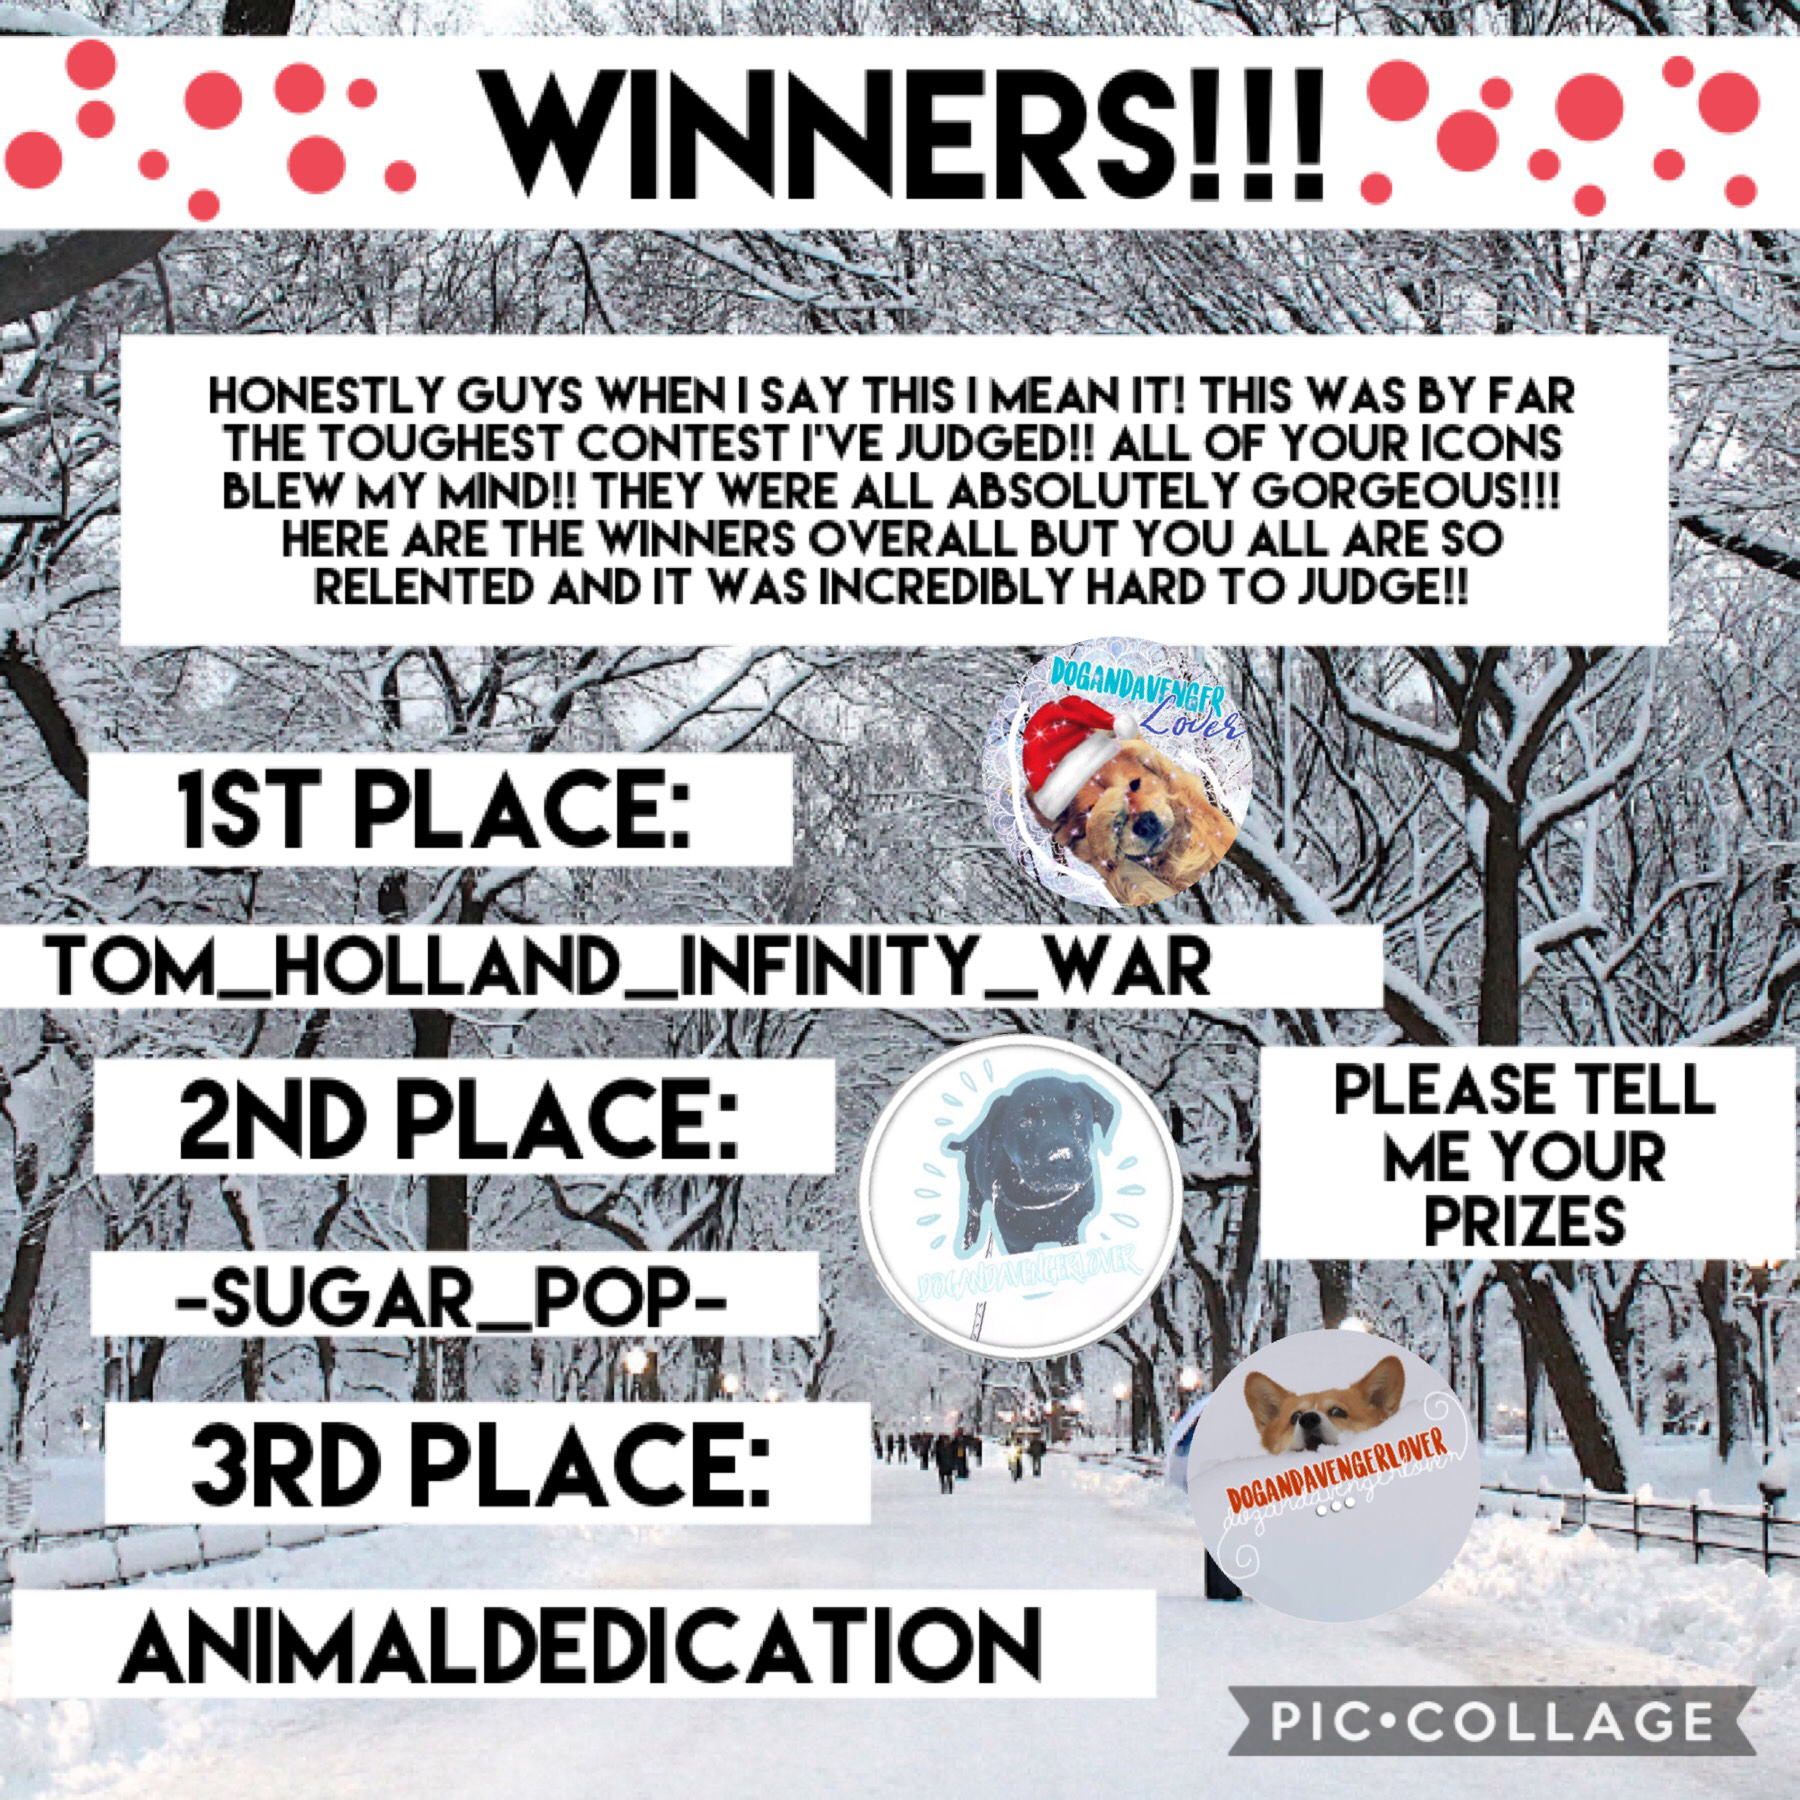 ❄️ Tap ❄️  Congratulations to the winners and a big thank you to everyone who entered!!